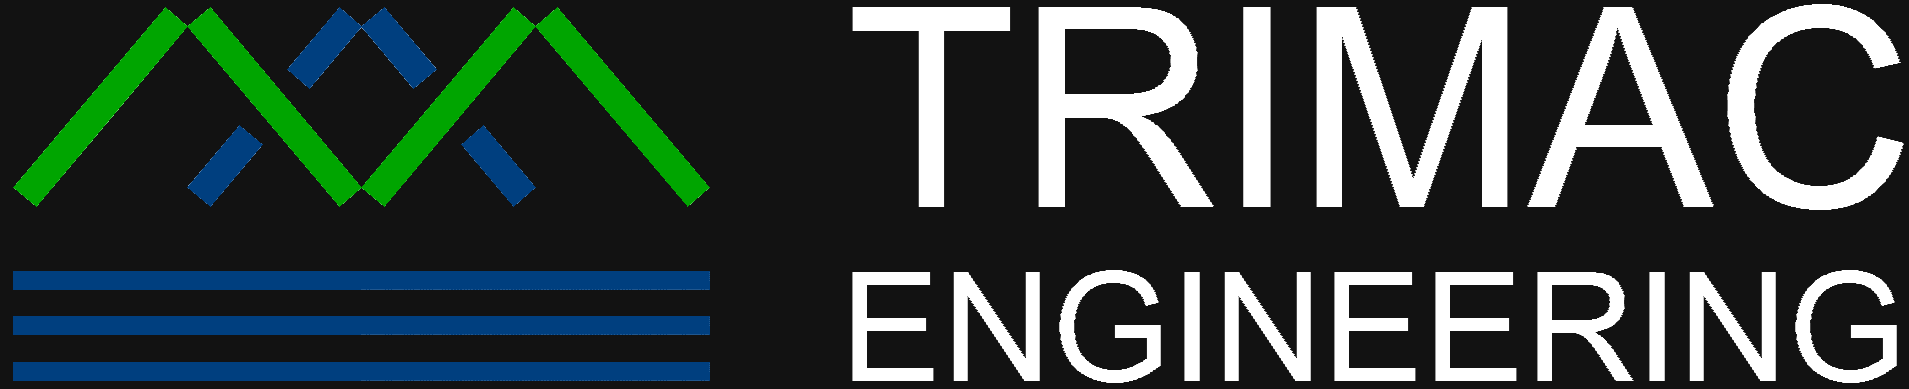 TriMac Engineering Inc